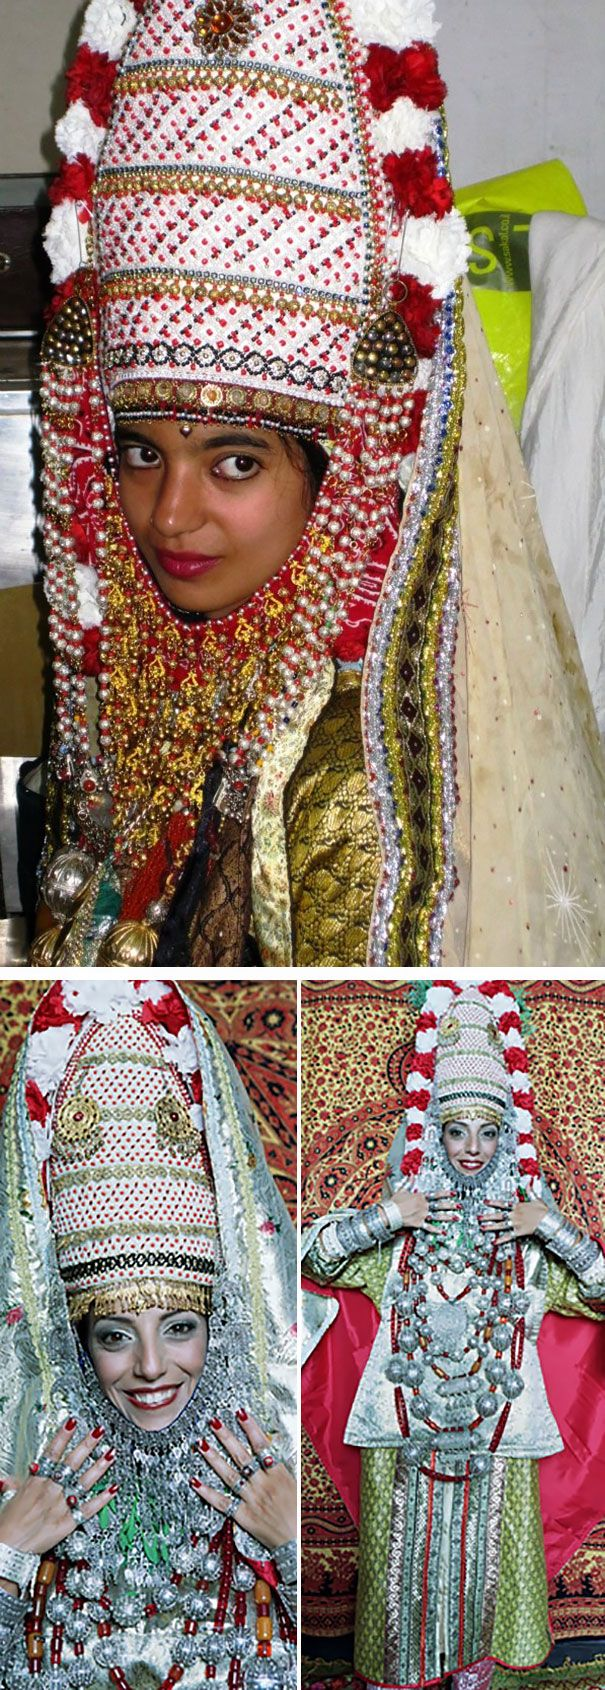 Yemenite Jewish Bride In a traditional Yemenite Jewish wedding, the bride wears jewelry and an elaborate headdress decorated with flowers and leaves. These are believed to ward off evil. Gold threads are also woven into the fabric of her clothes and wedding celebrations traditionally last seven days.